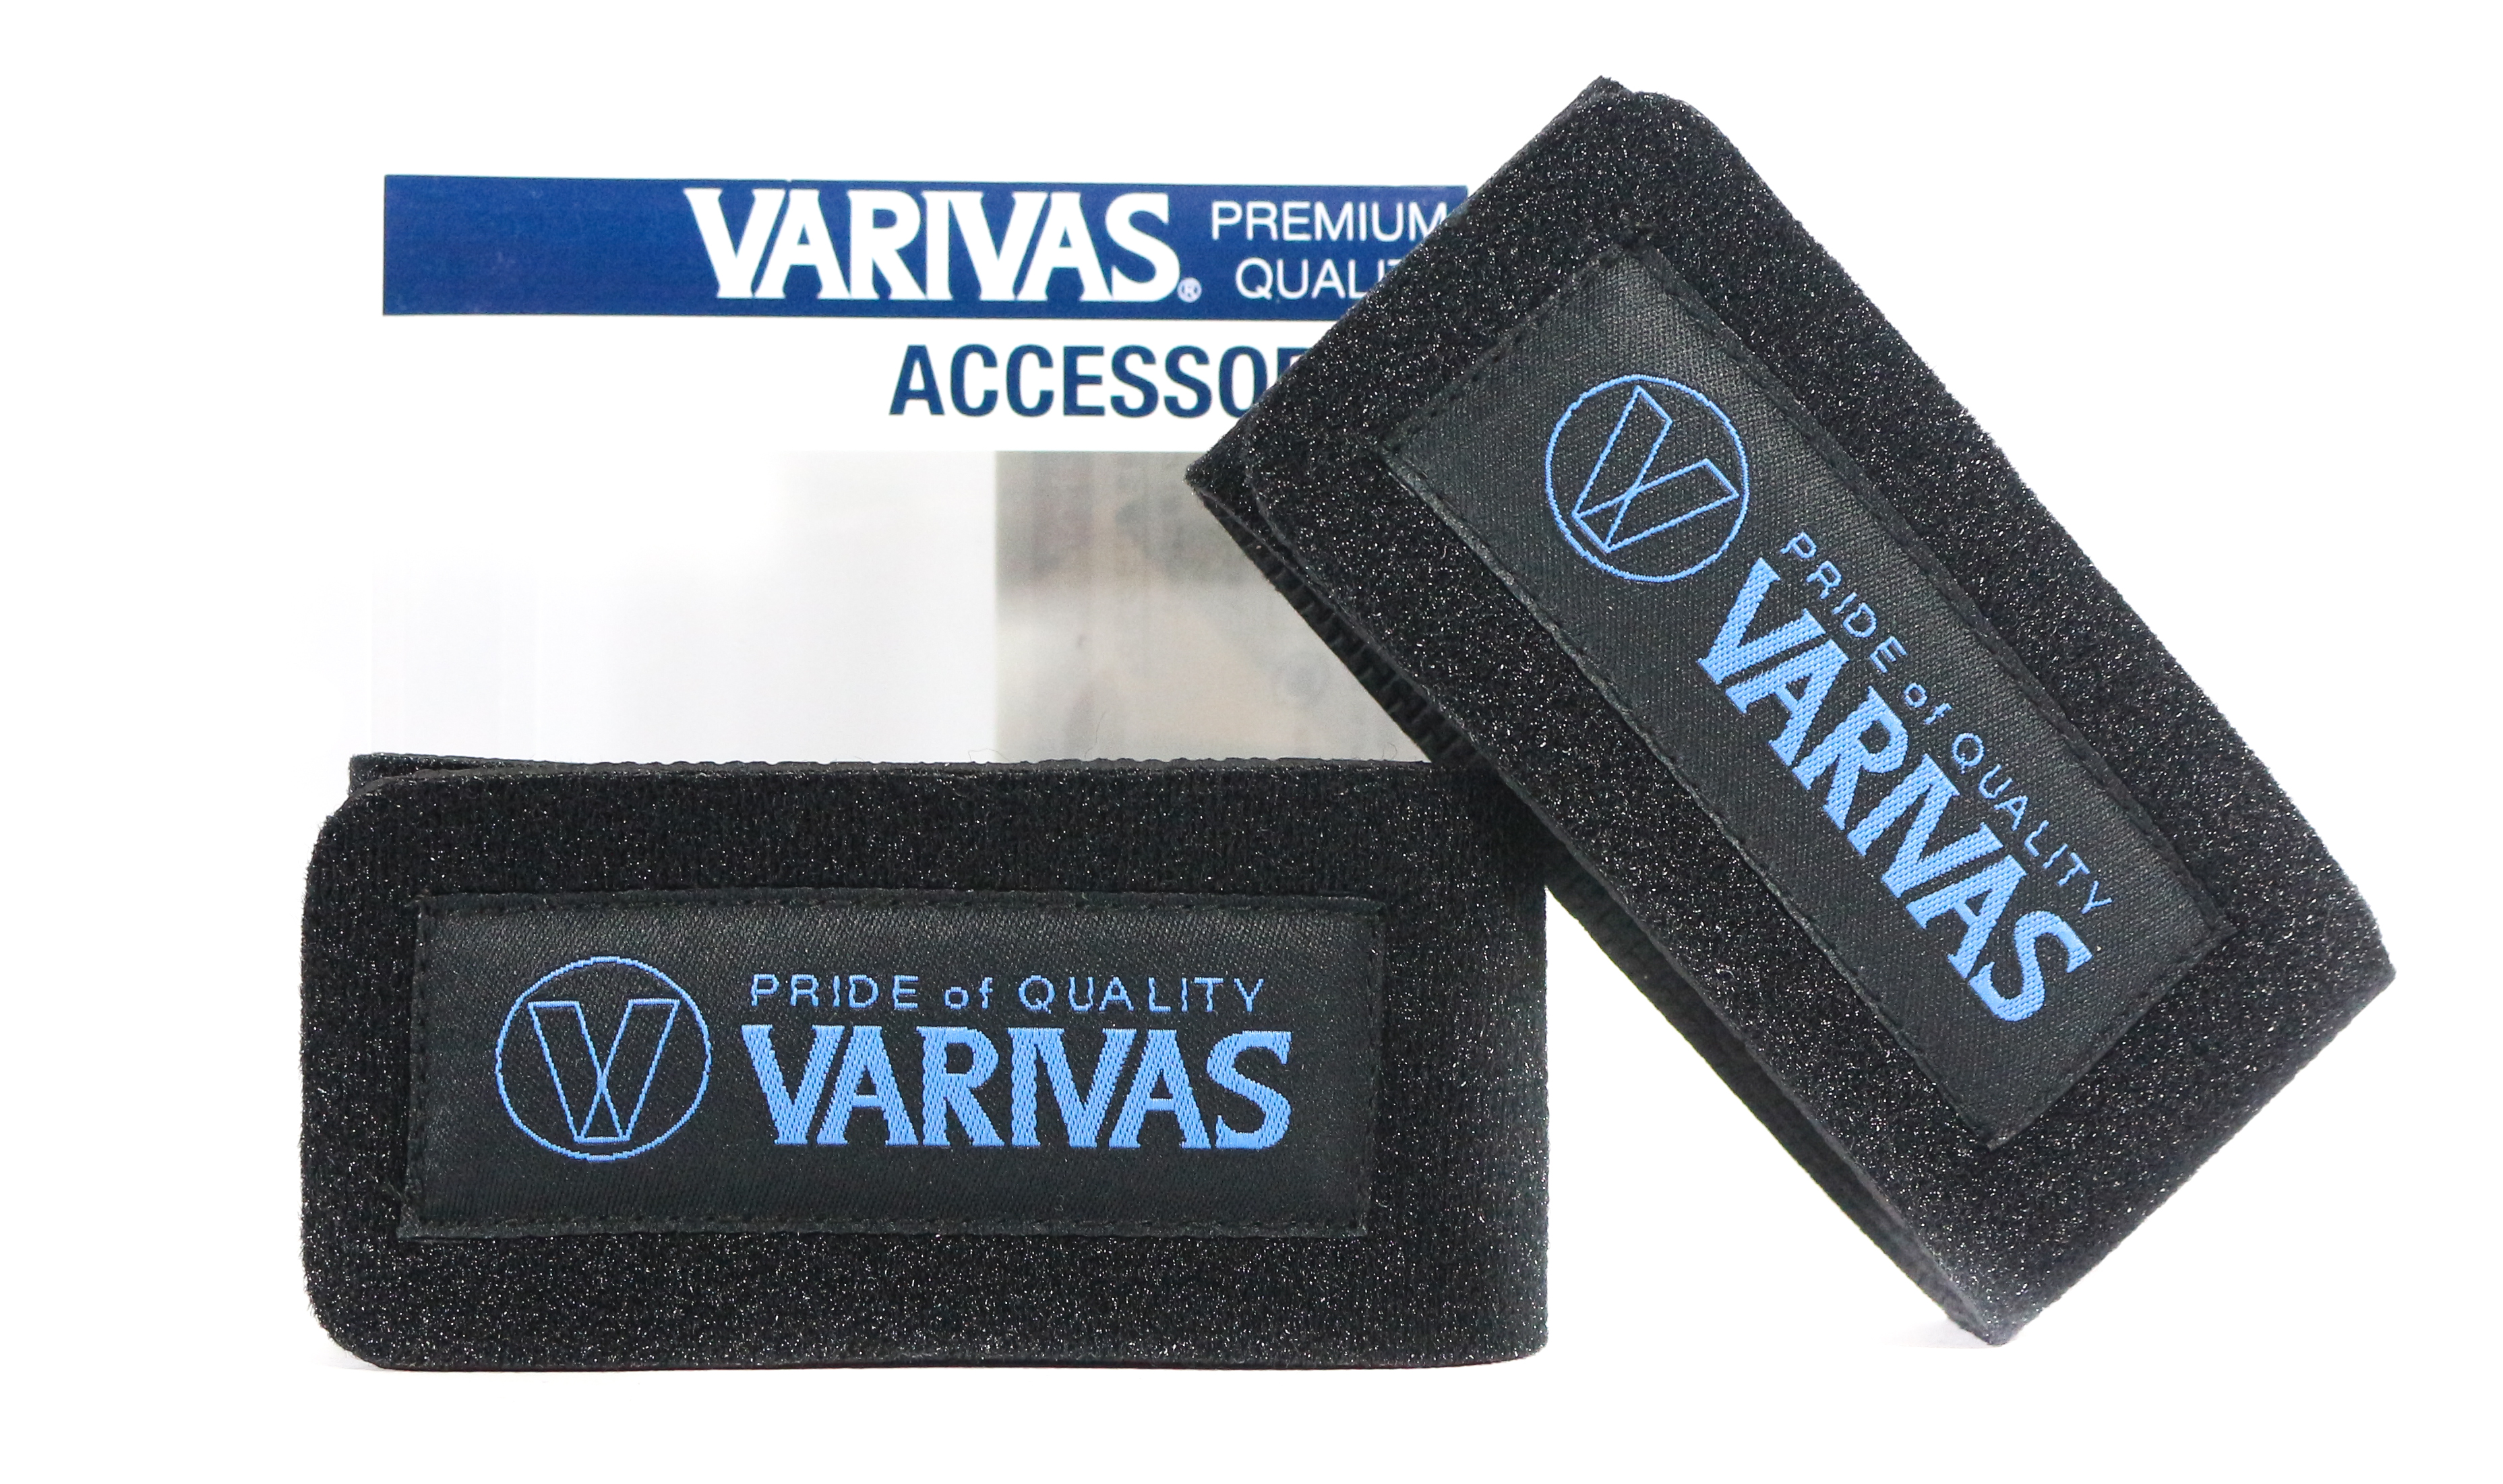 Varivas Rod Belt Strap 2 piece pack 50 x 400 mm Size L (7565)